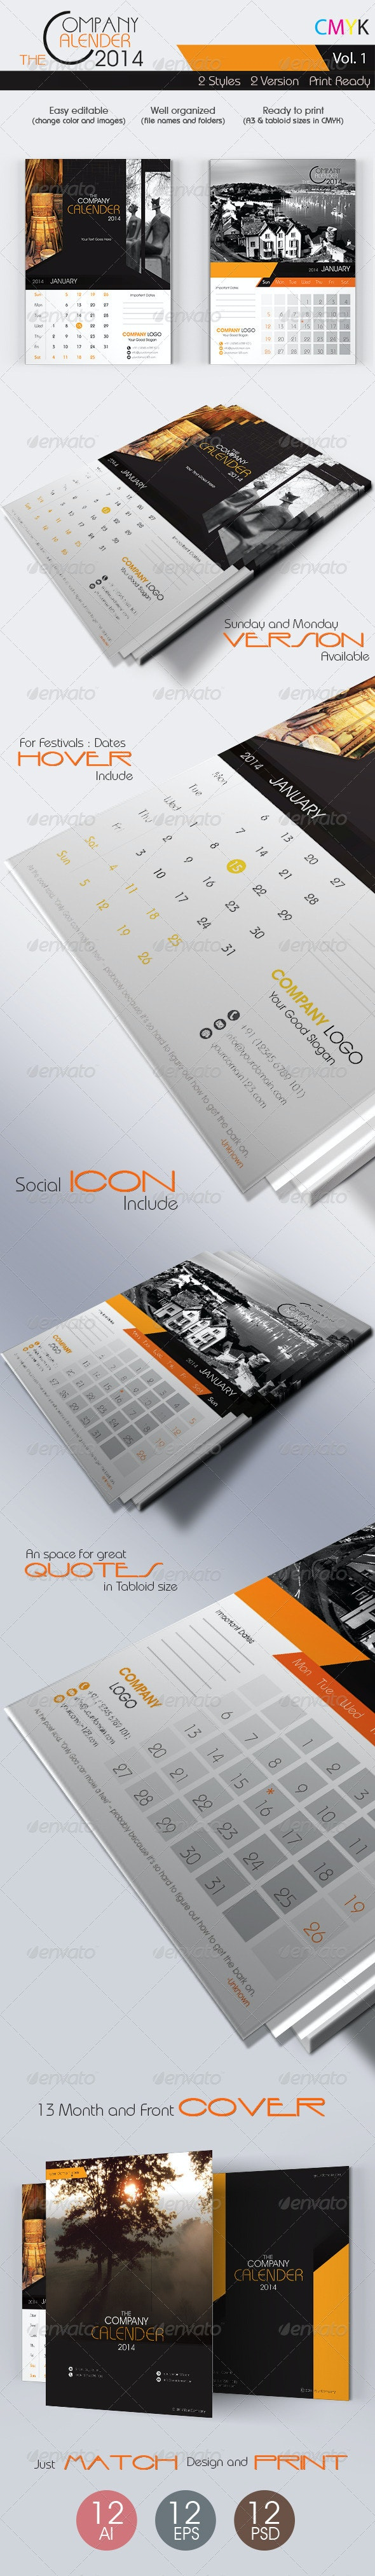 The Company Calenders 2014 - Calendars Stationery